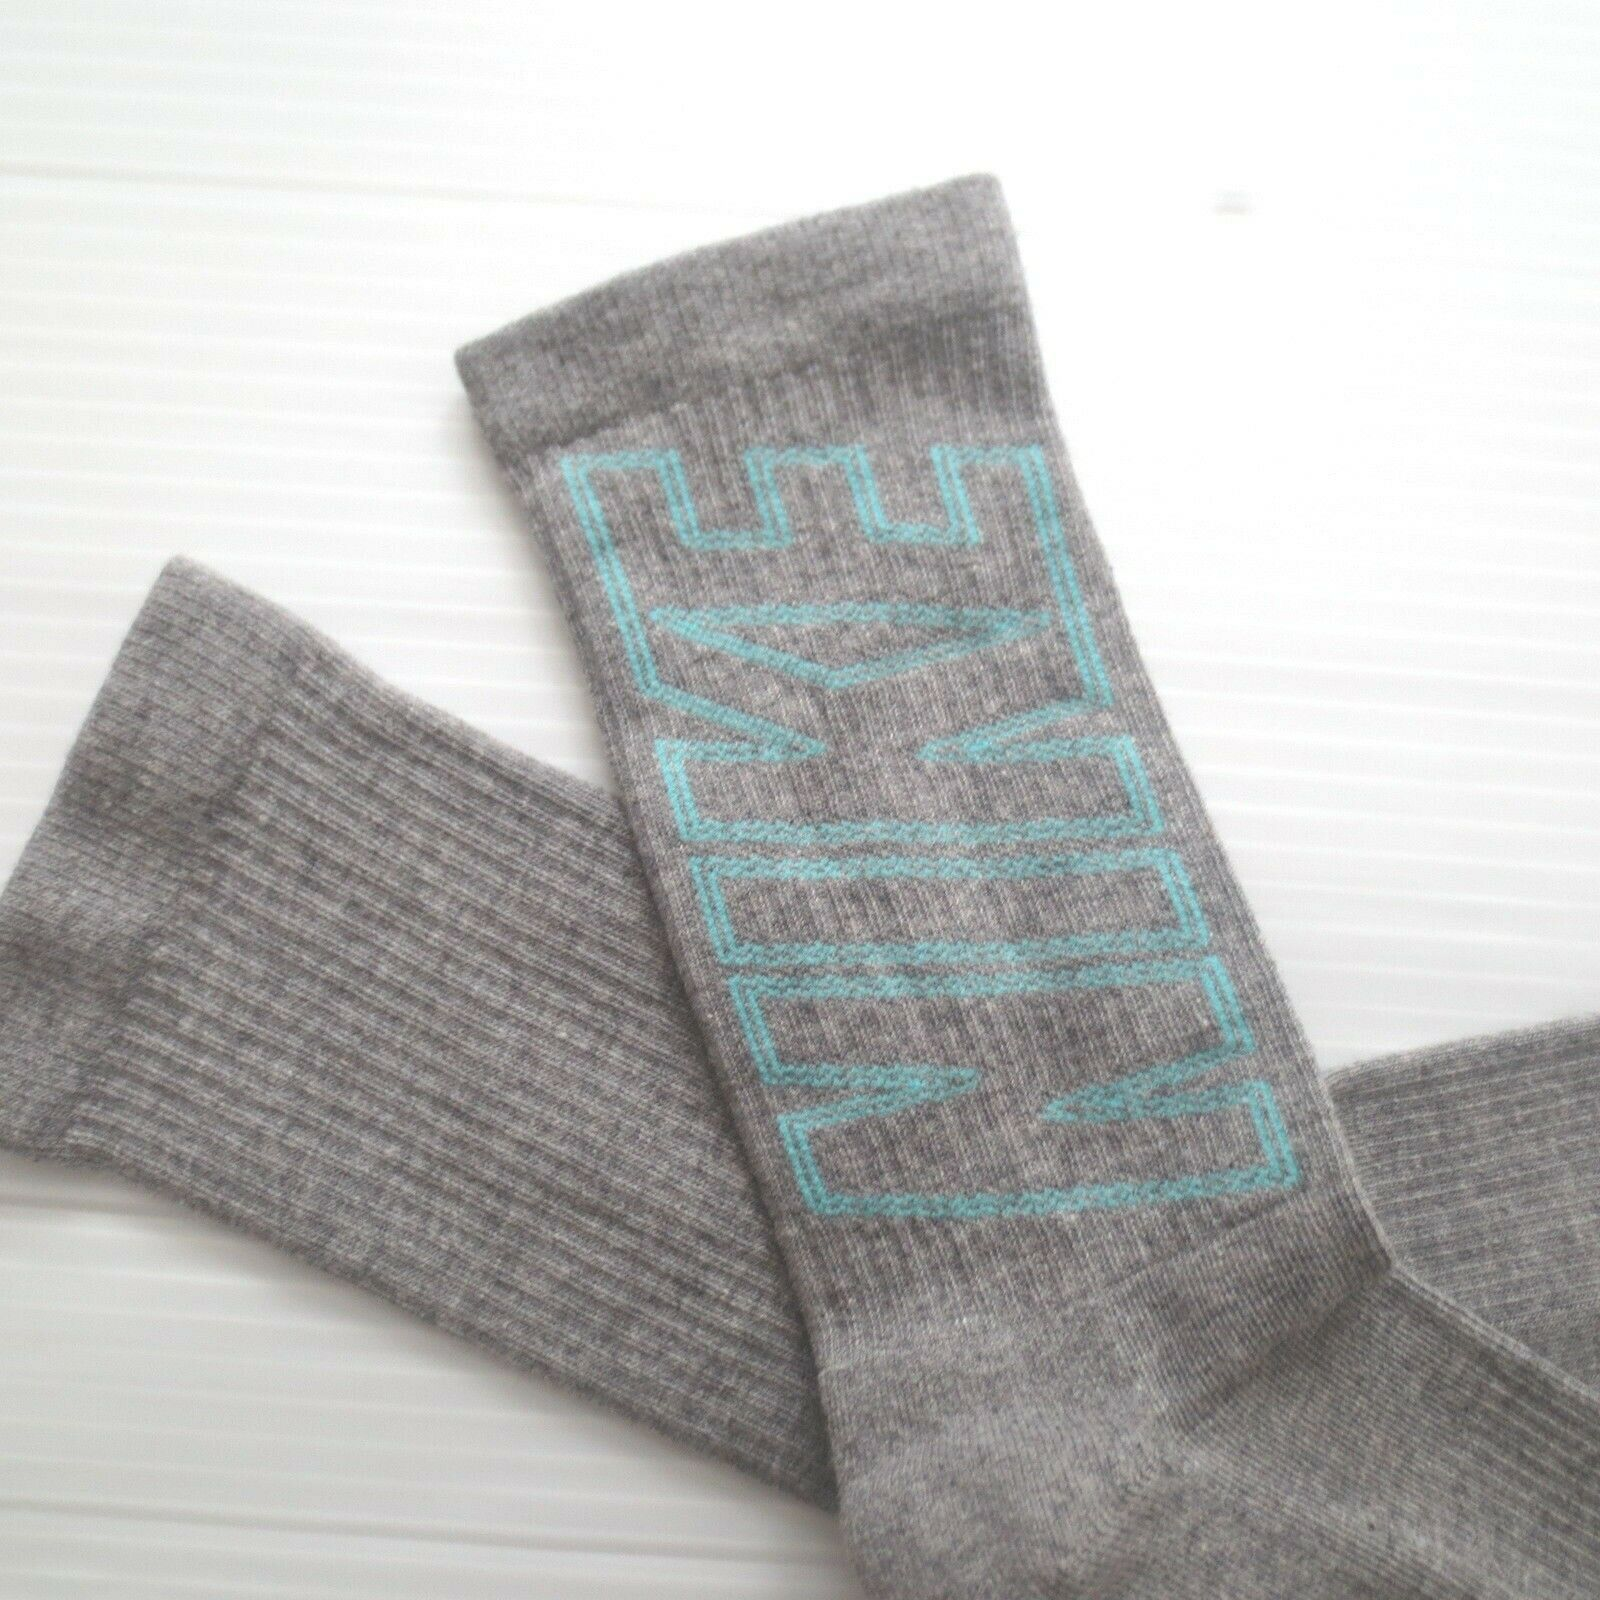 Nike Youth Performance Crew Socks - SX5816 - Gray - Size M - NEW